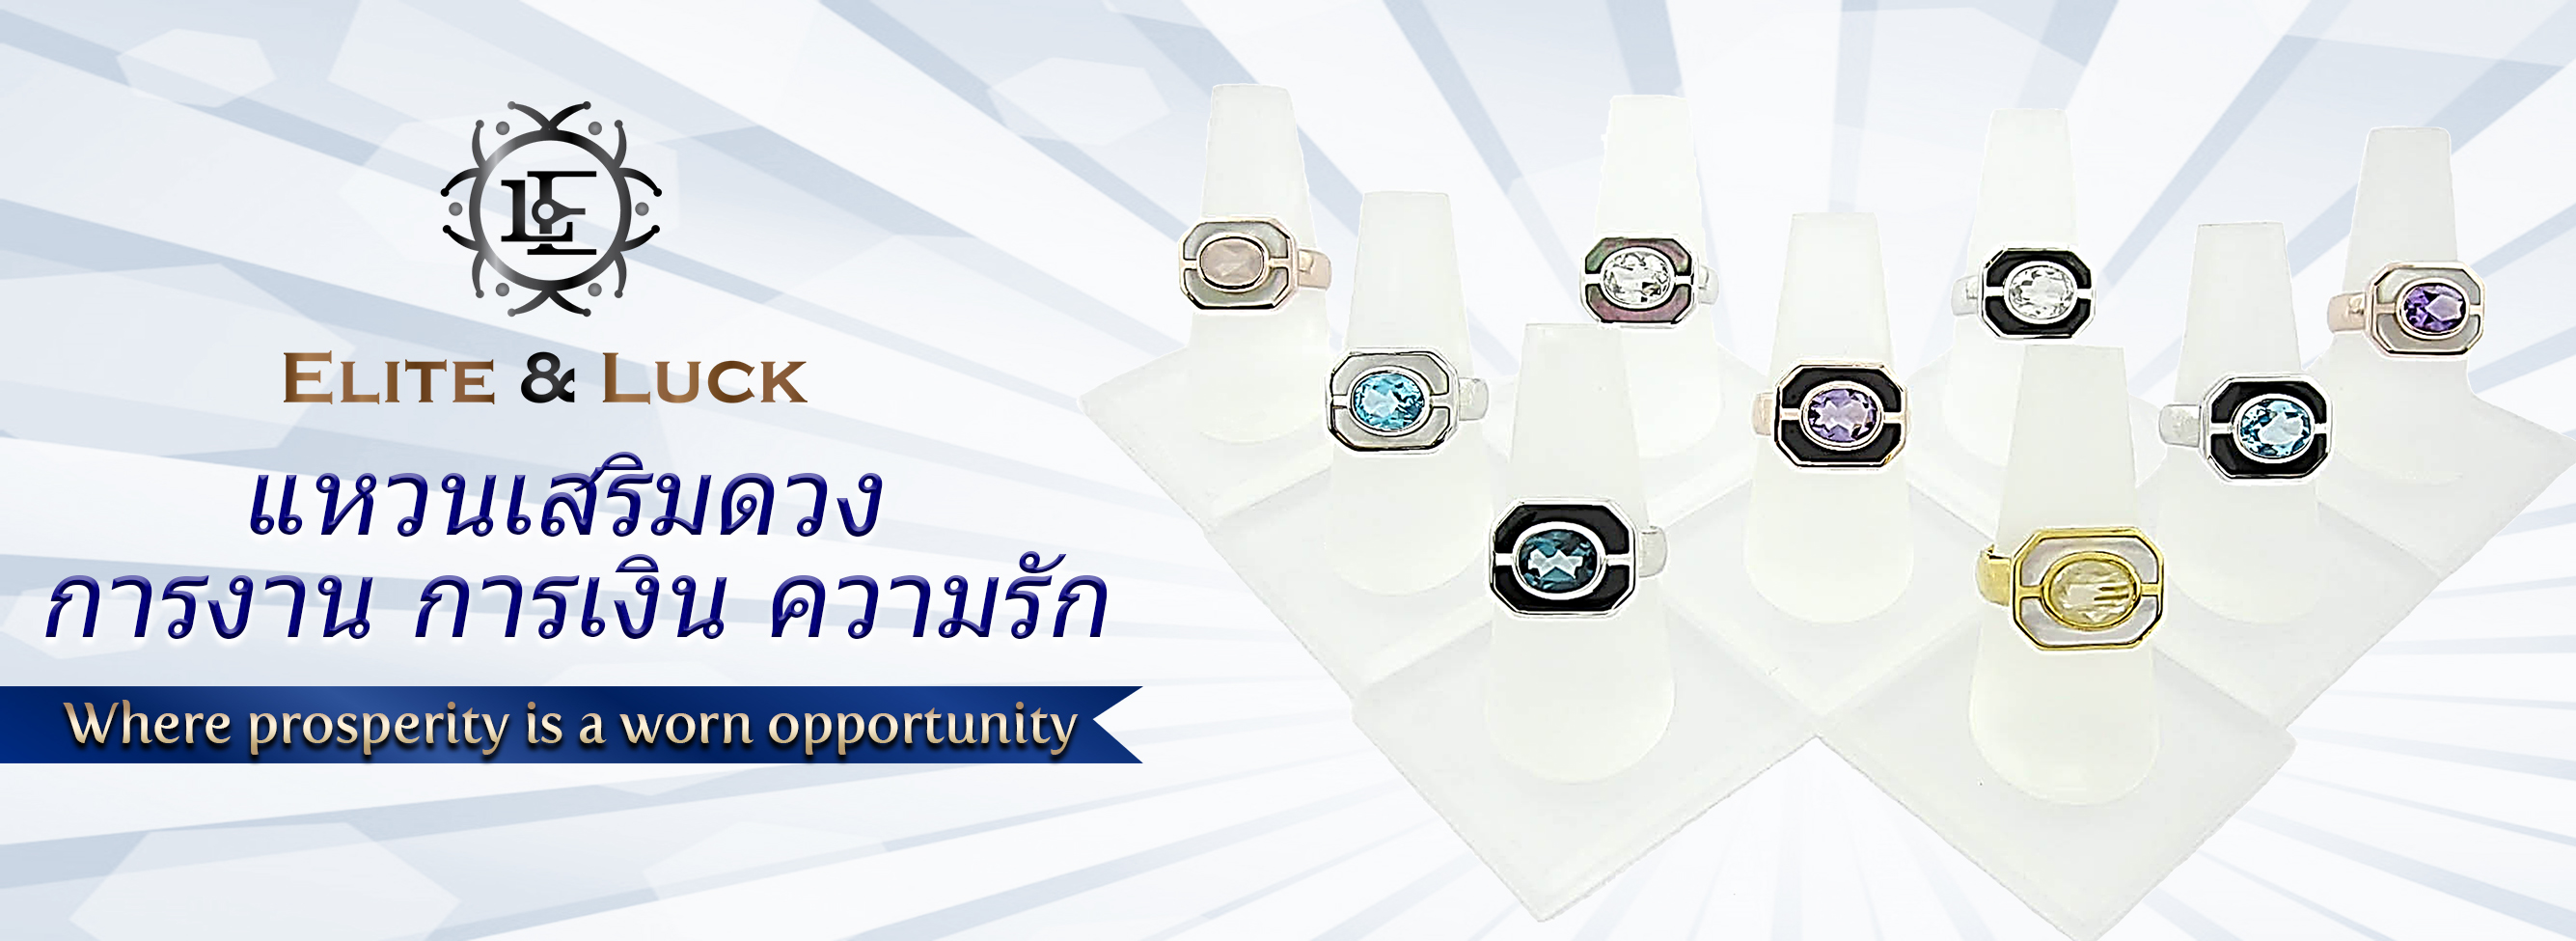 Elite & Luck : Rings, Cufflinks, and Accessories - Thailand